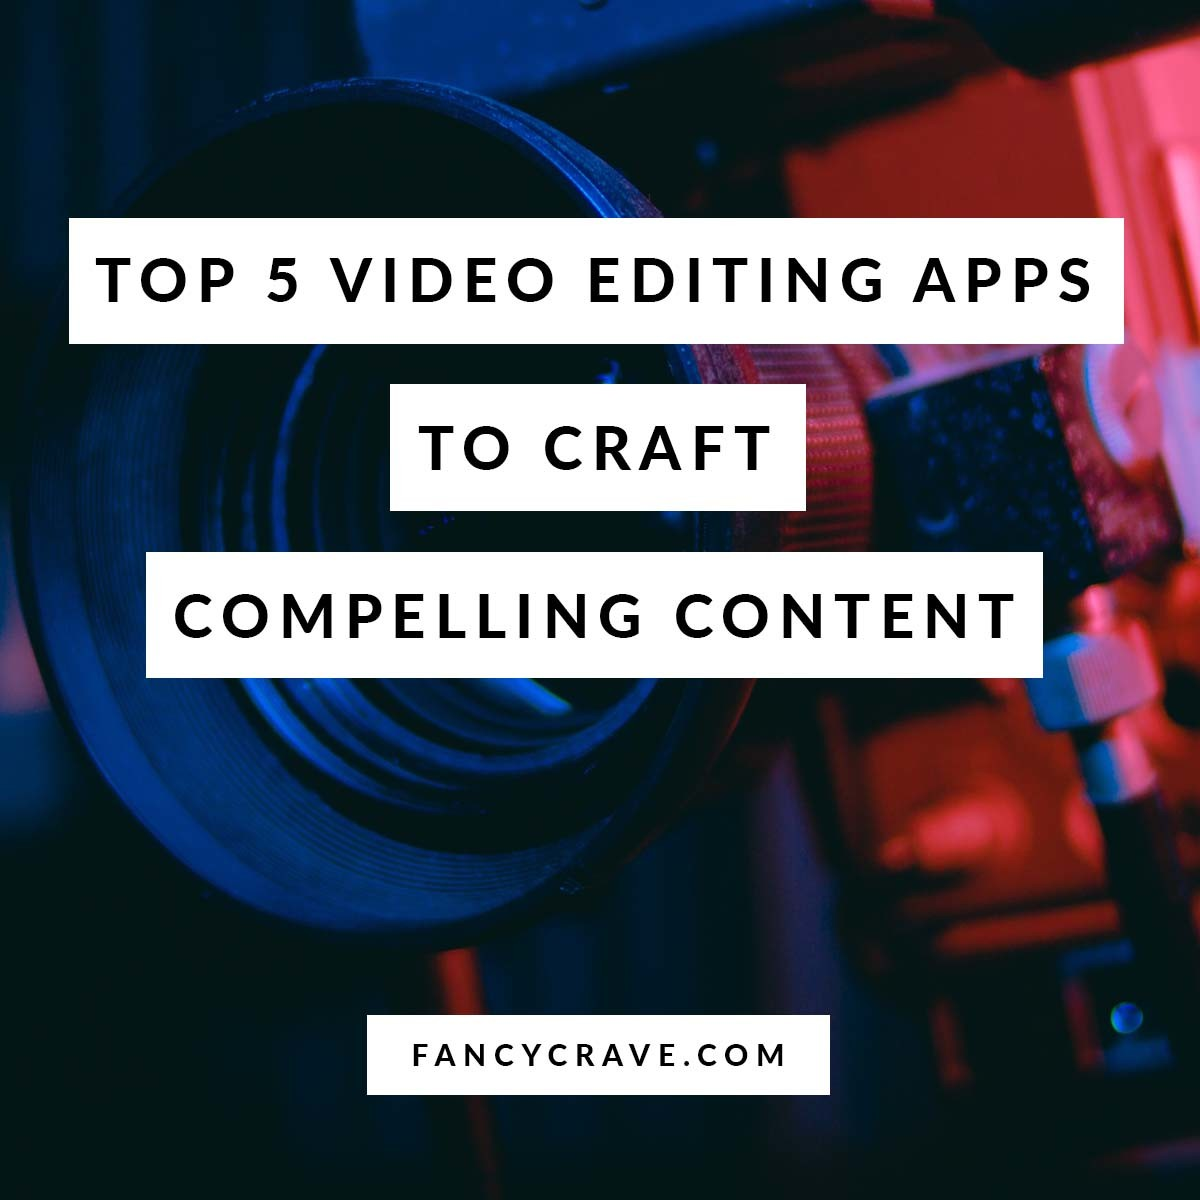 Top Video Editing Apps